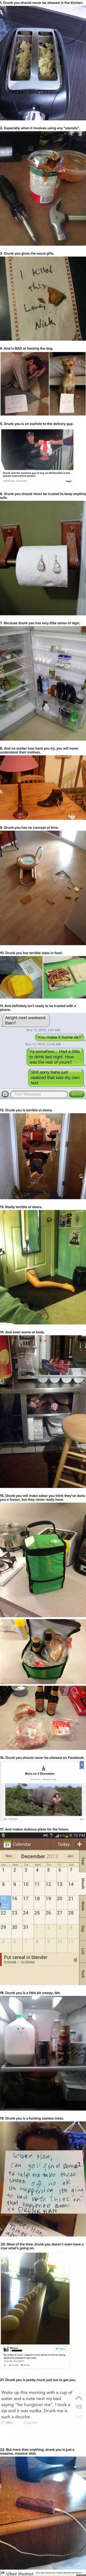 22 Pictures That Prove Drunk You Is The Absolute Worst… Or The Best?